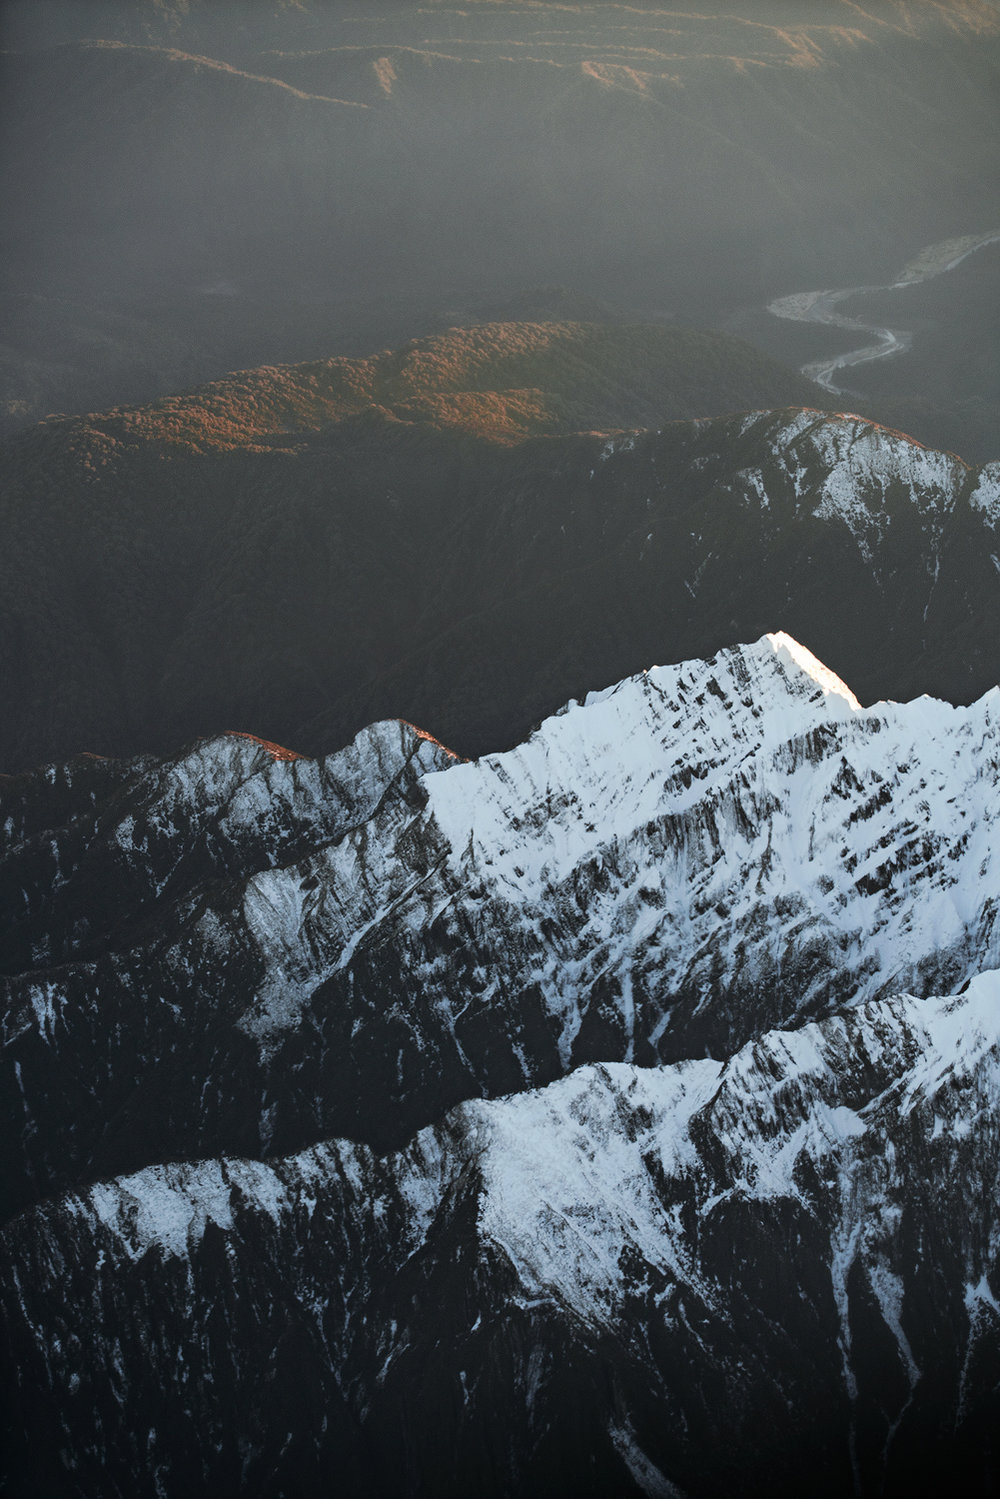 Mt. Cook National Park from the Air